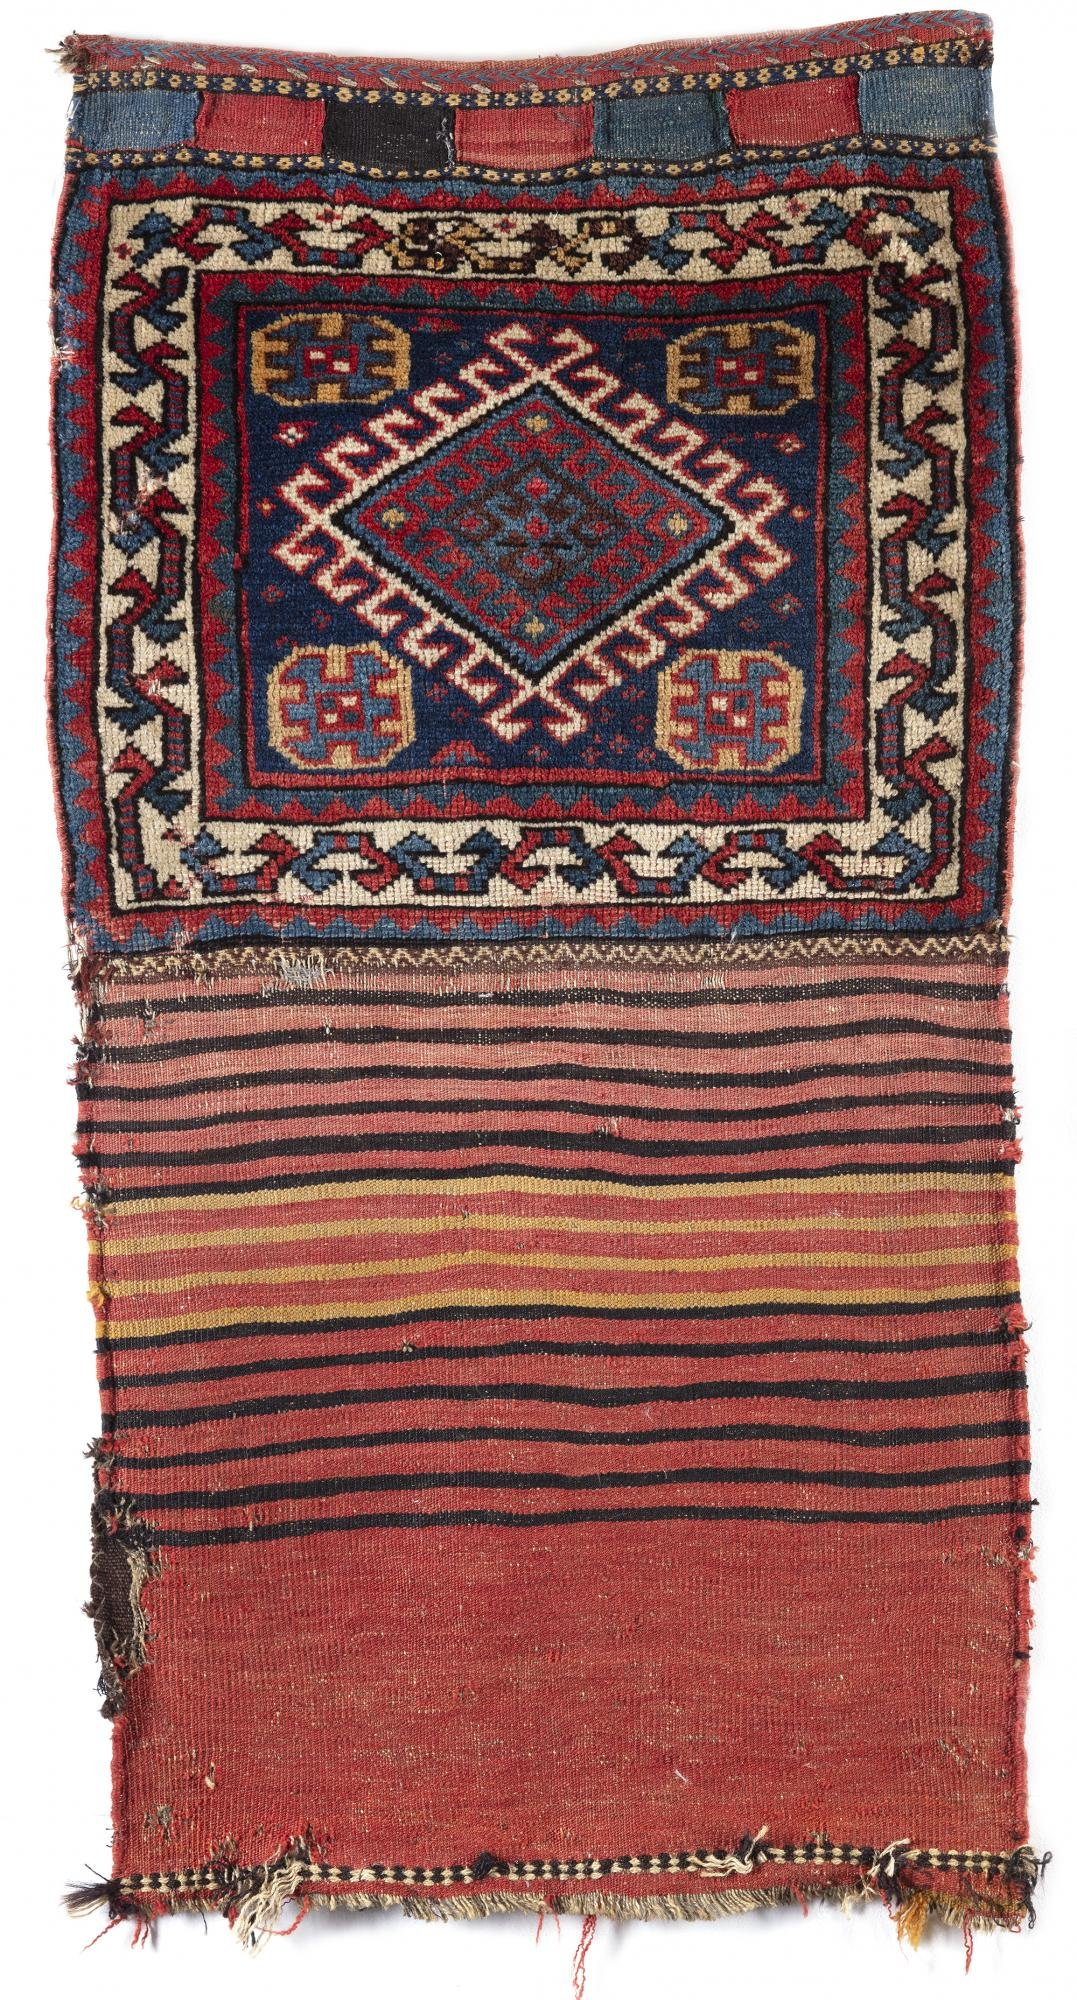 TWO GASHQAI BAG FACES, SOUTH PERSIA, 19TH CENTURY